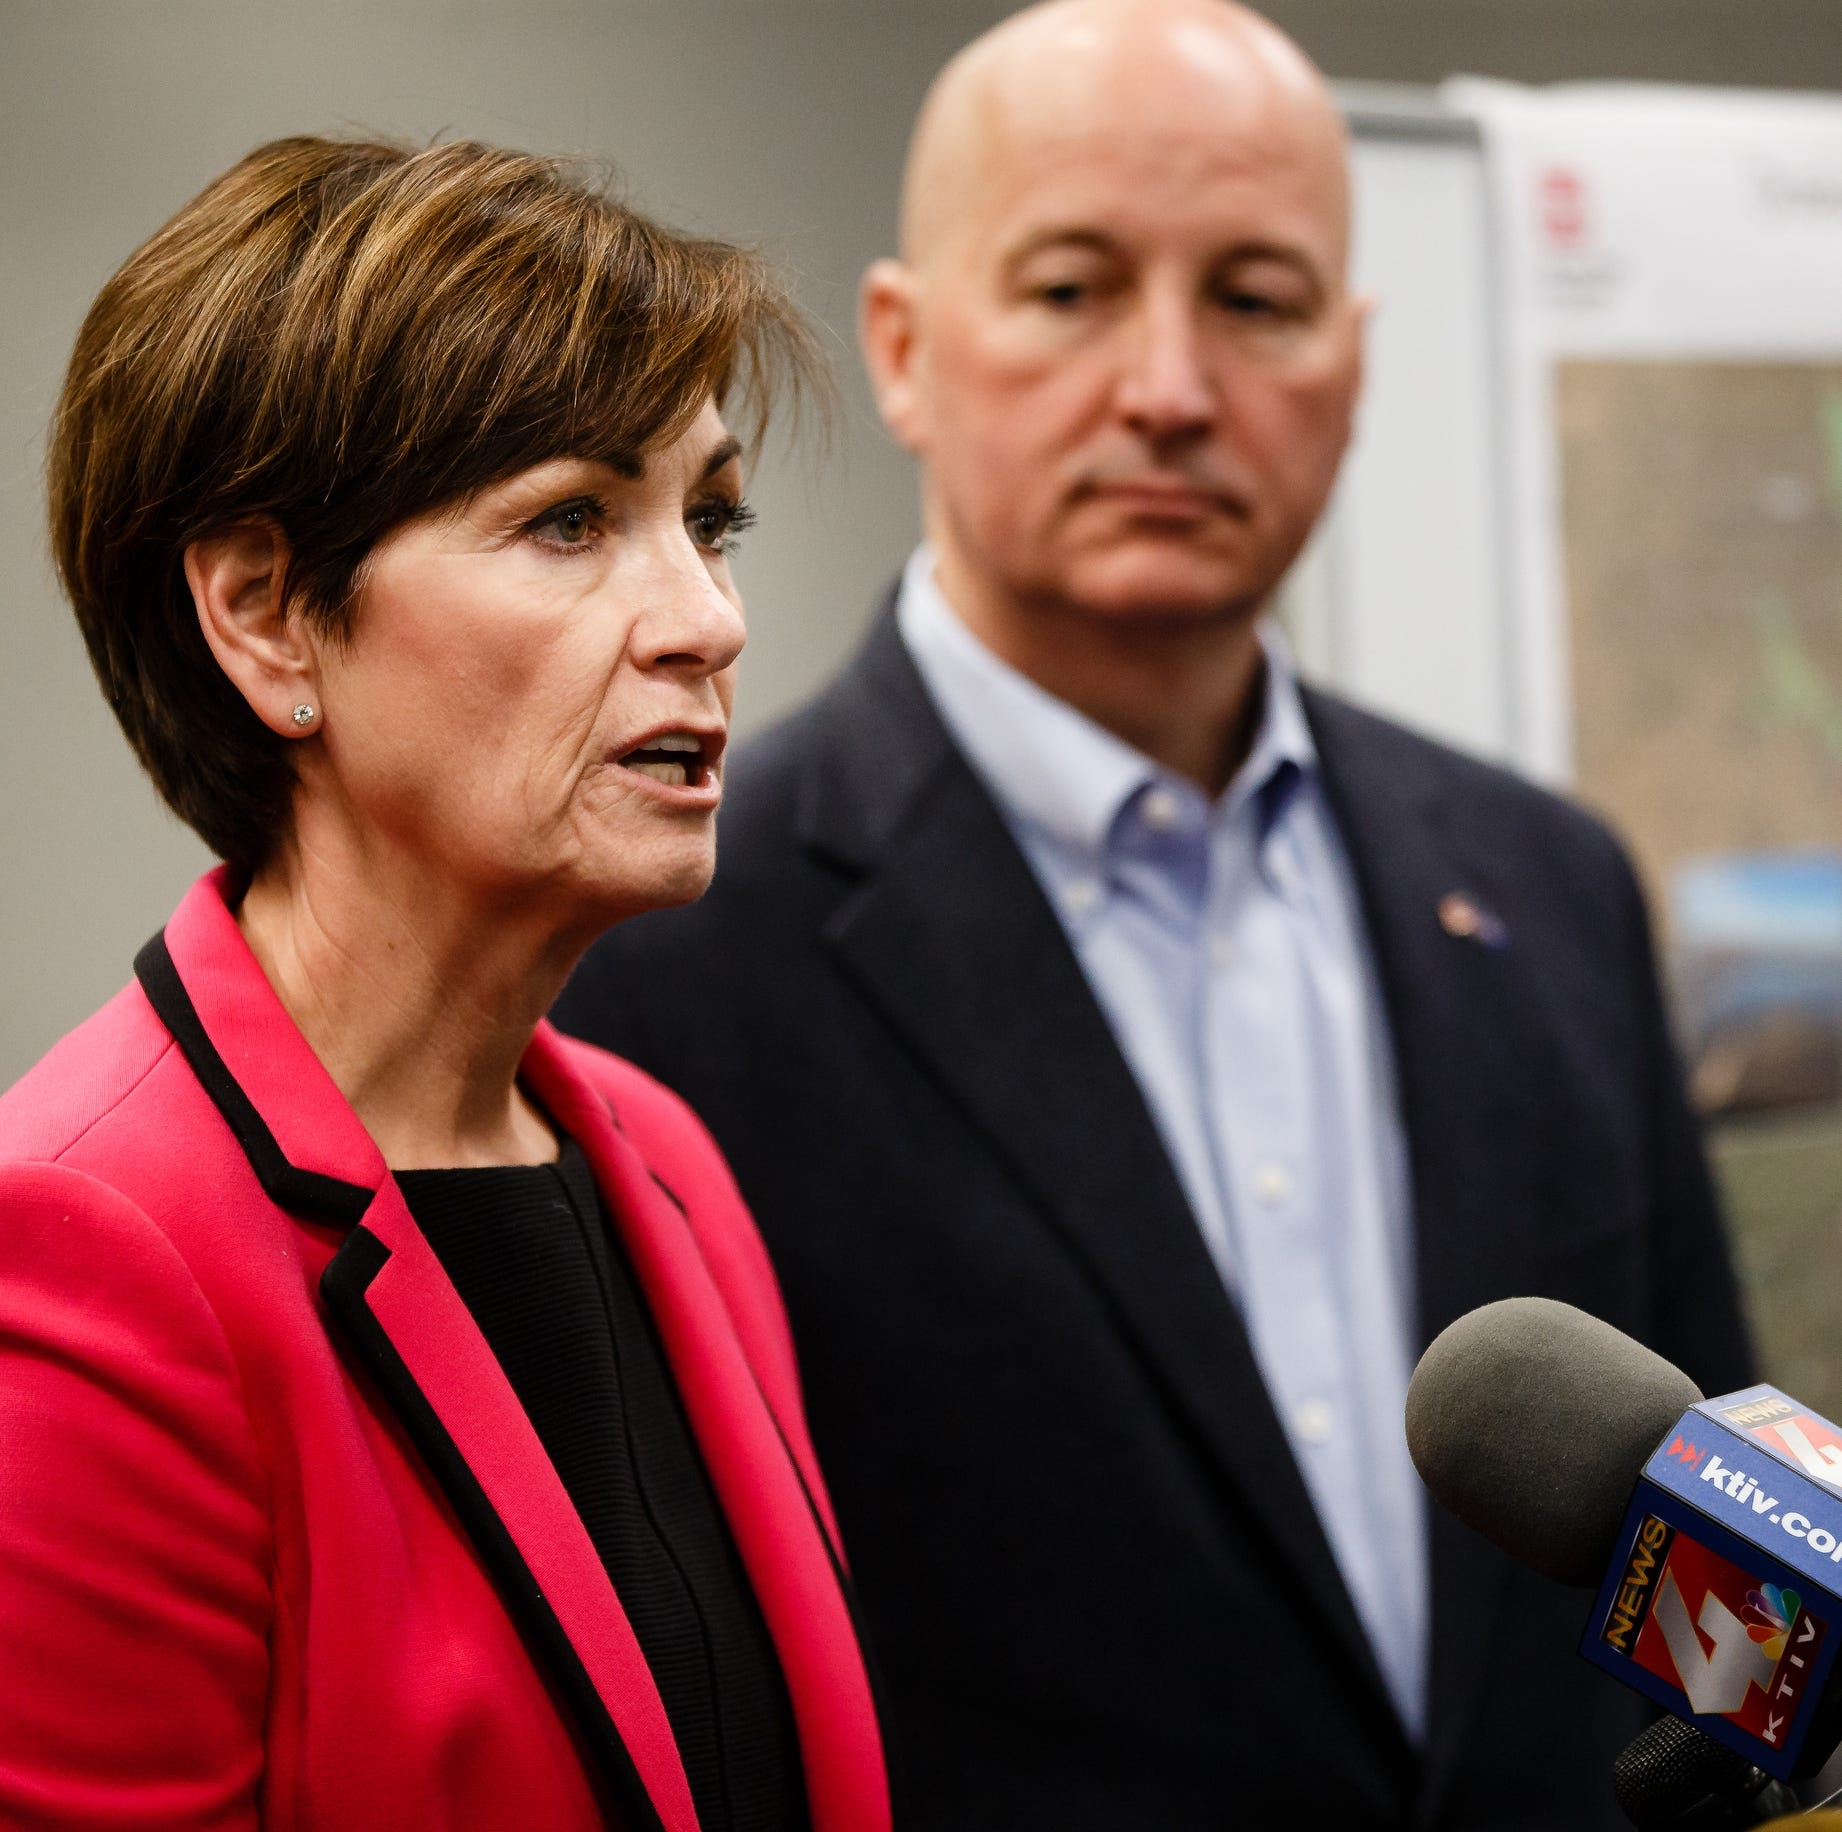 Iowa Governor Kim Reynolds and Nebraska Governor Pete Ricketts talk to the press after meeting with the U.S. Army Corps of Engineers and the Federal Emergency Management Agency to get an updated assessment of flood damage, a look ahead on the Missouri River outflow, and identify regional solutions for flooding and levee repairs on Wednesday, April 3, 2019, in Council Bluffs.